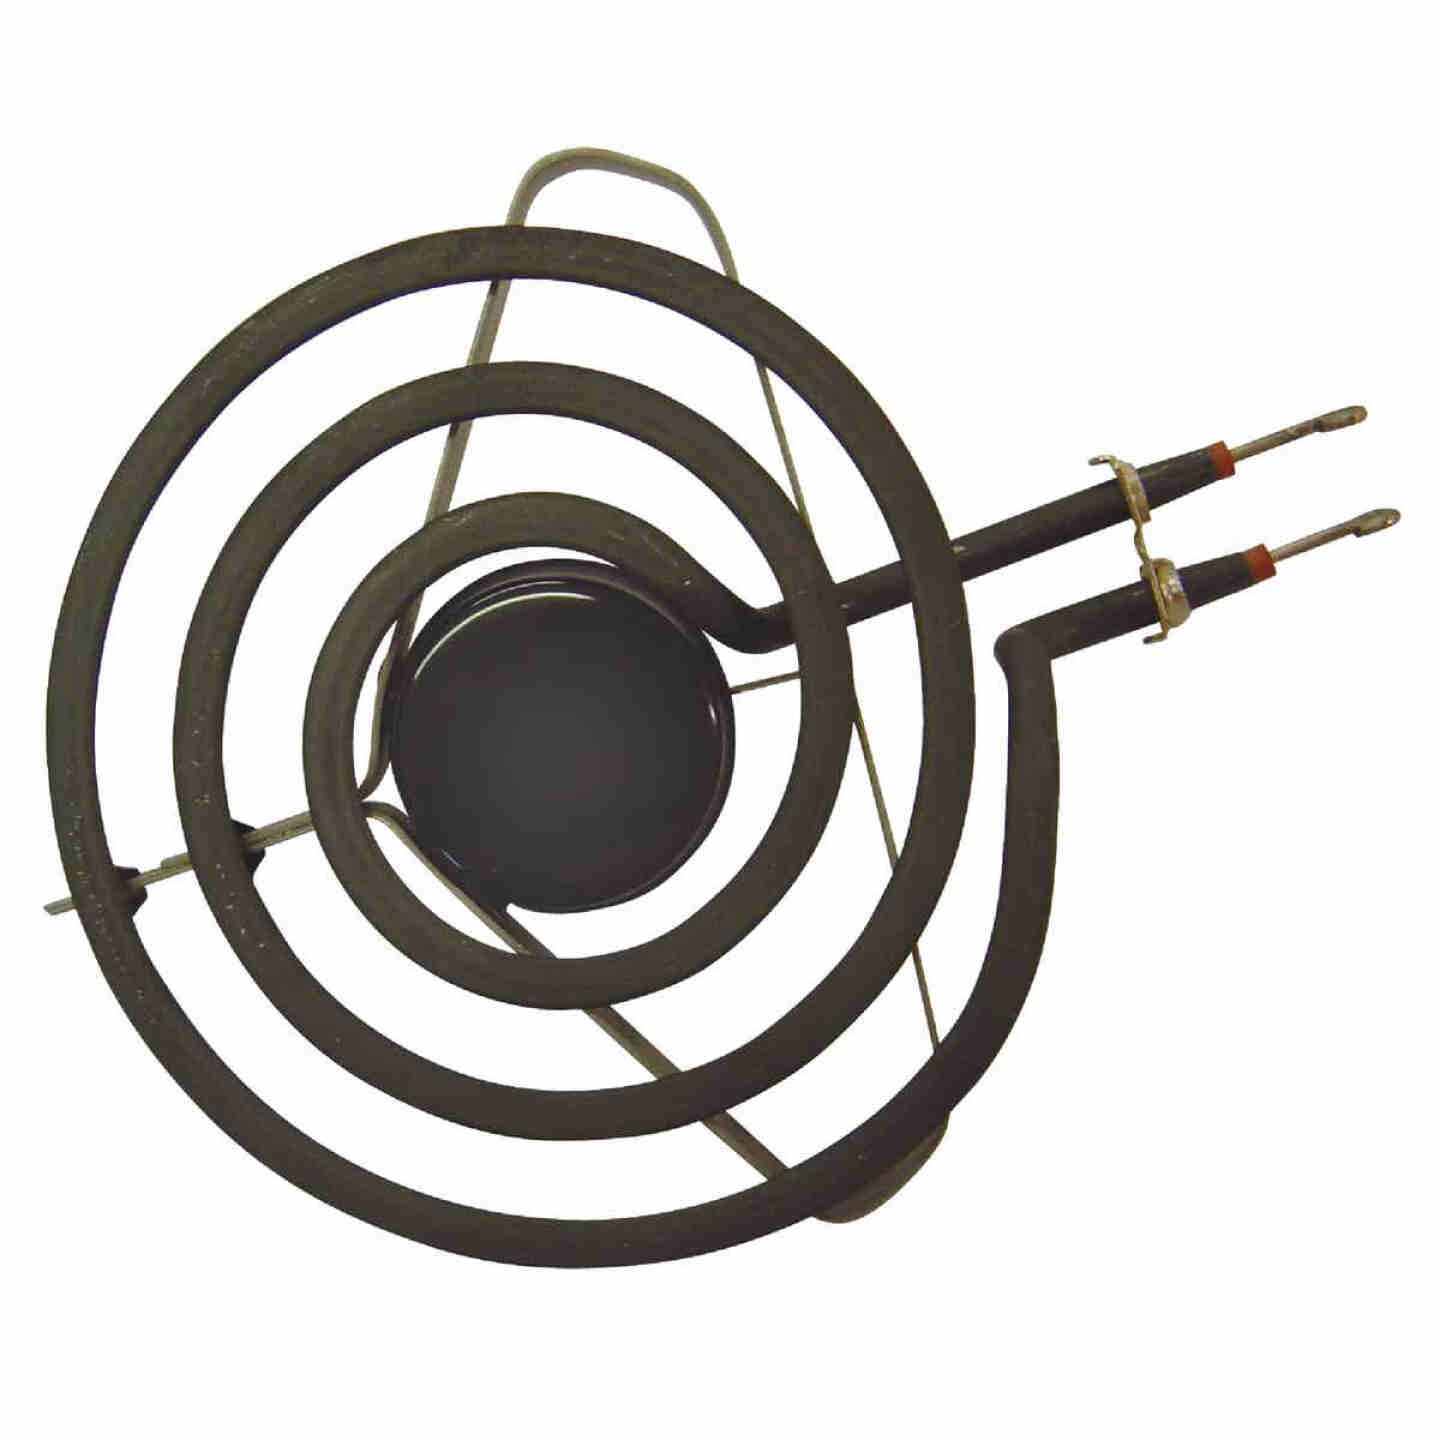 Range Kleen Style A 6 In. 3-Coil Plug-in Range Element with Delta Bracket Image 1